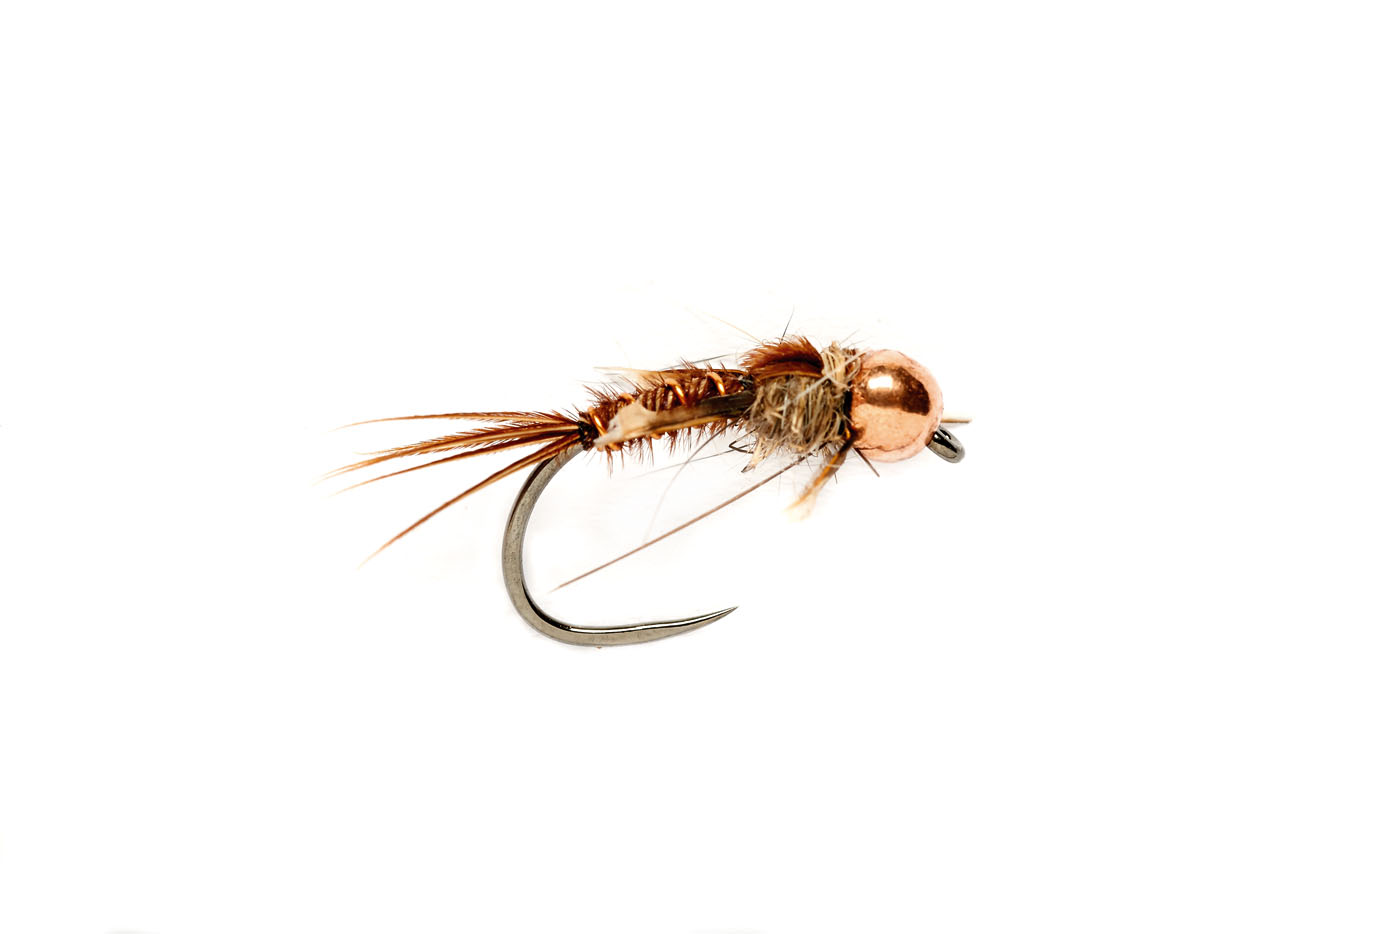 Pheasant Tail Czech Copper (TBH) Barbless